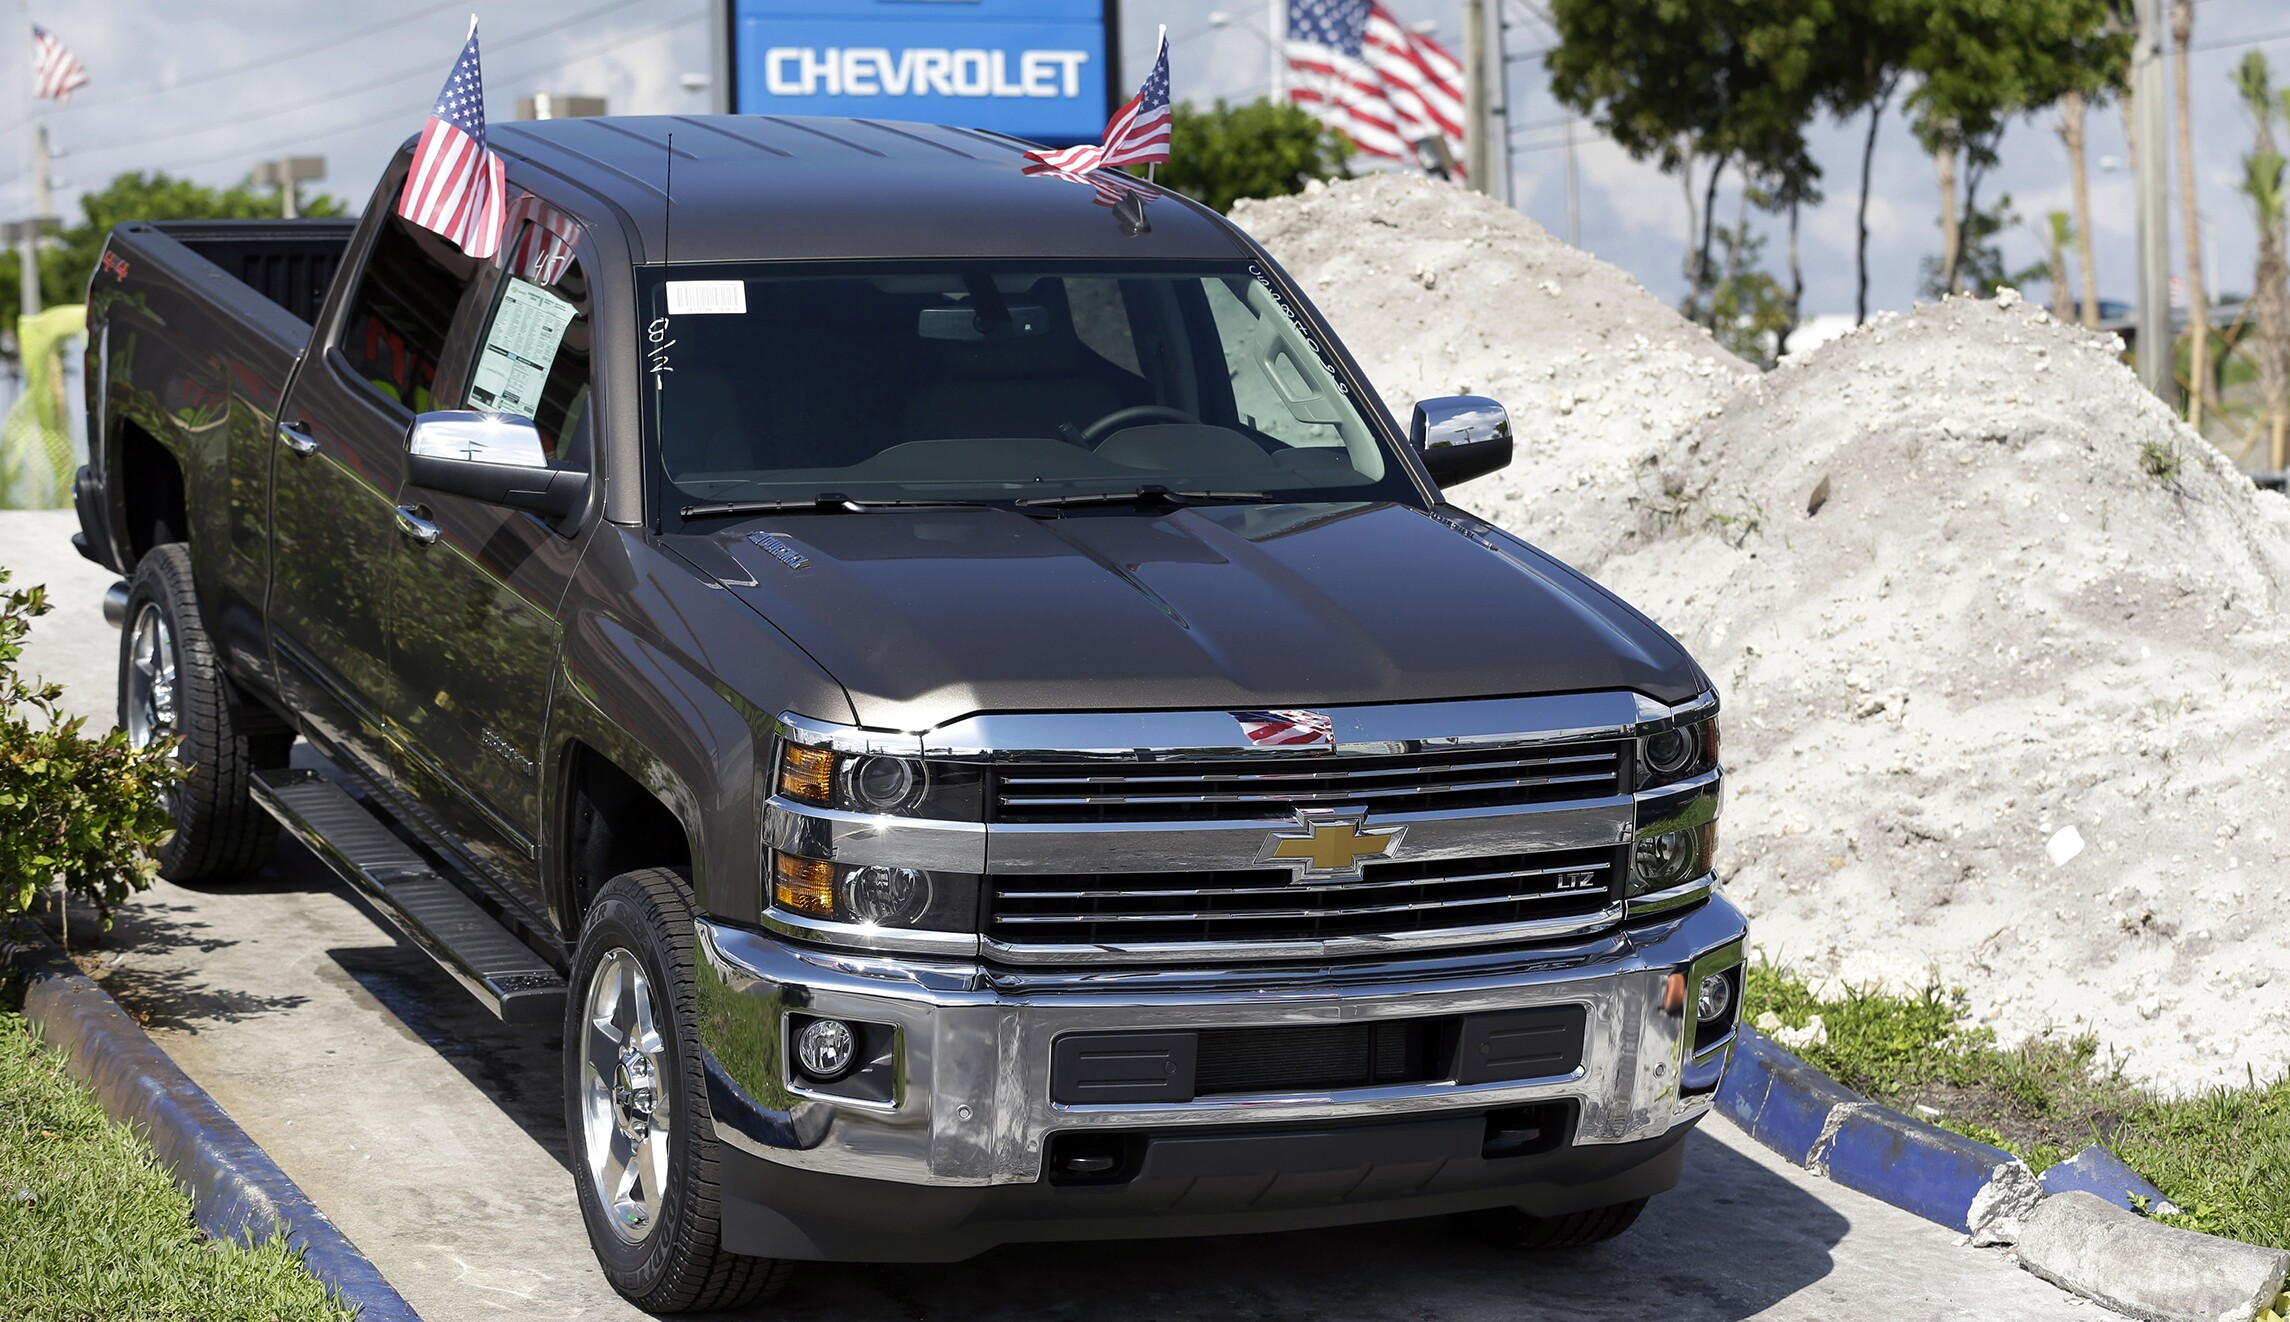 GM recalls over 1 million vehicles for power steering failure